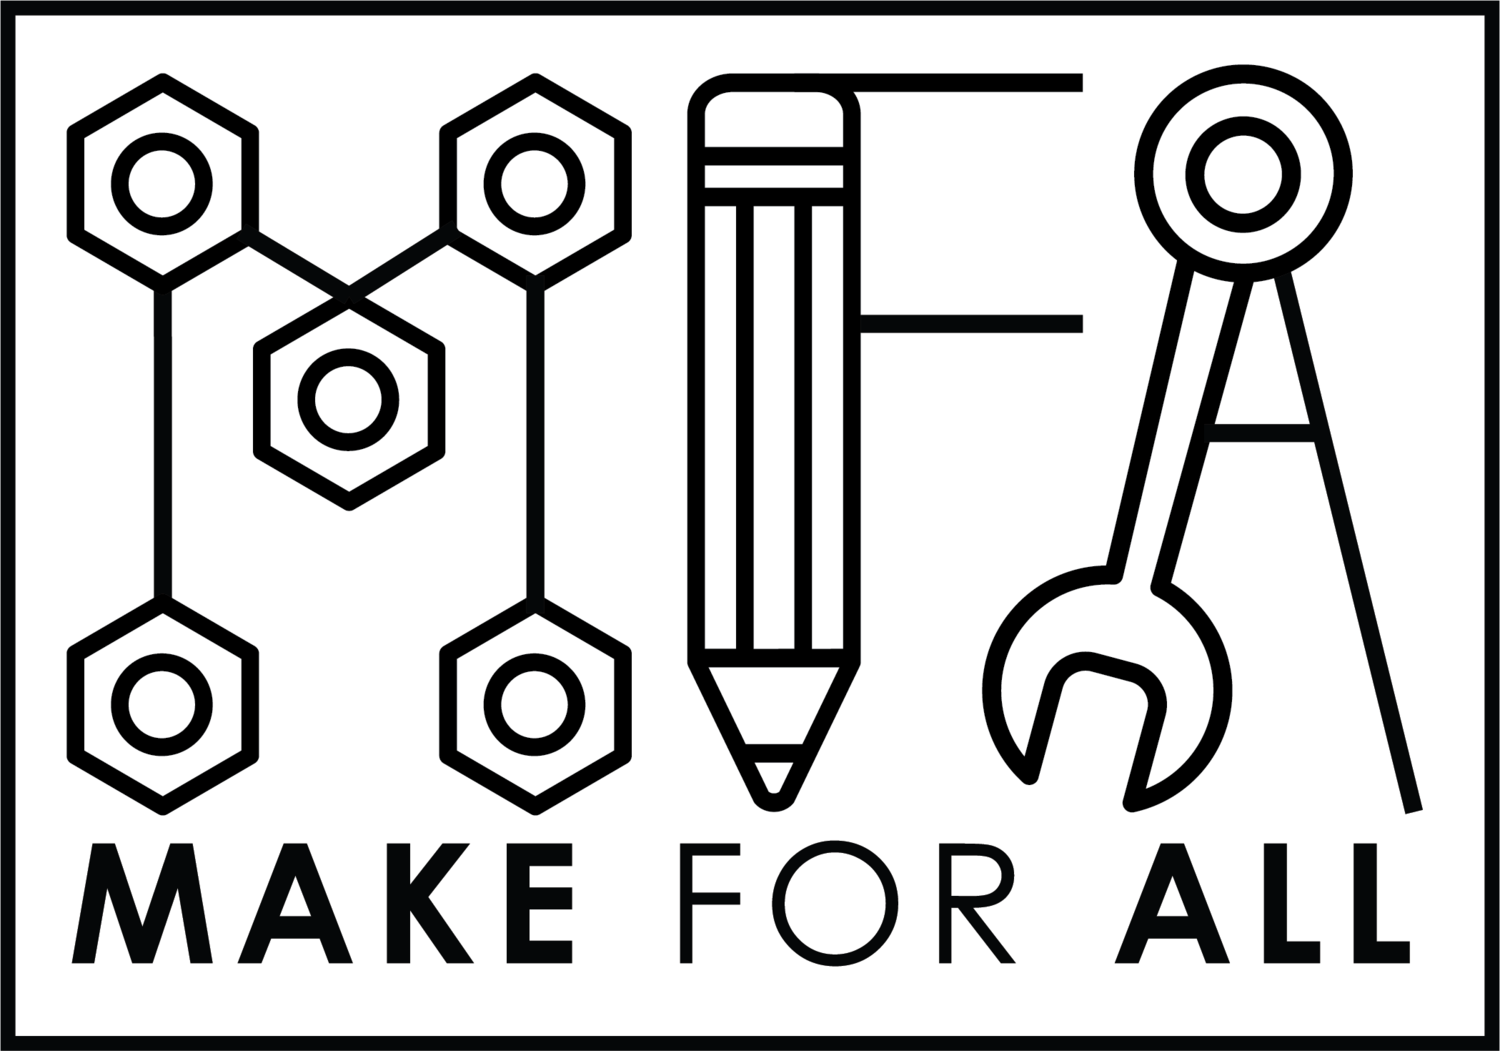 Make For All